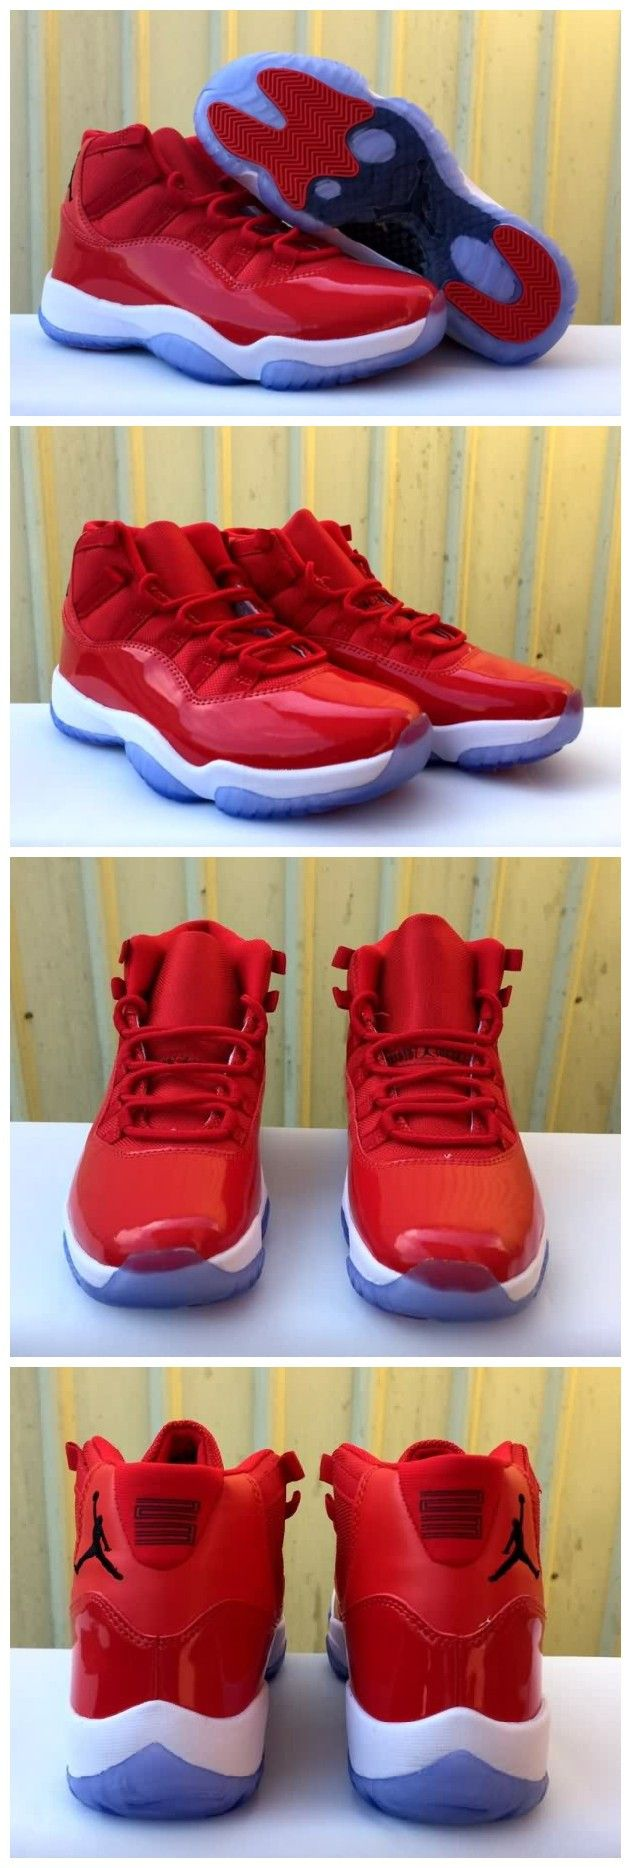 Cheap Air Jordan 11 Retro High All Red White Unisex shoes Free Shipping